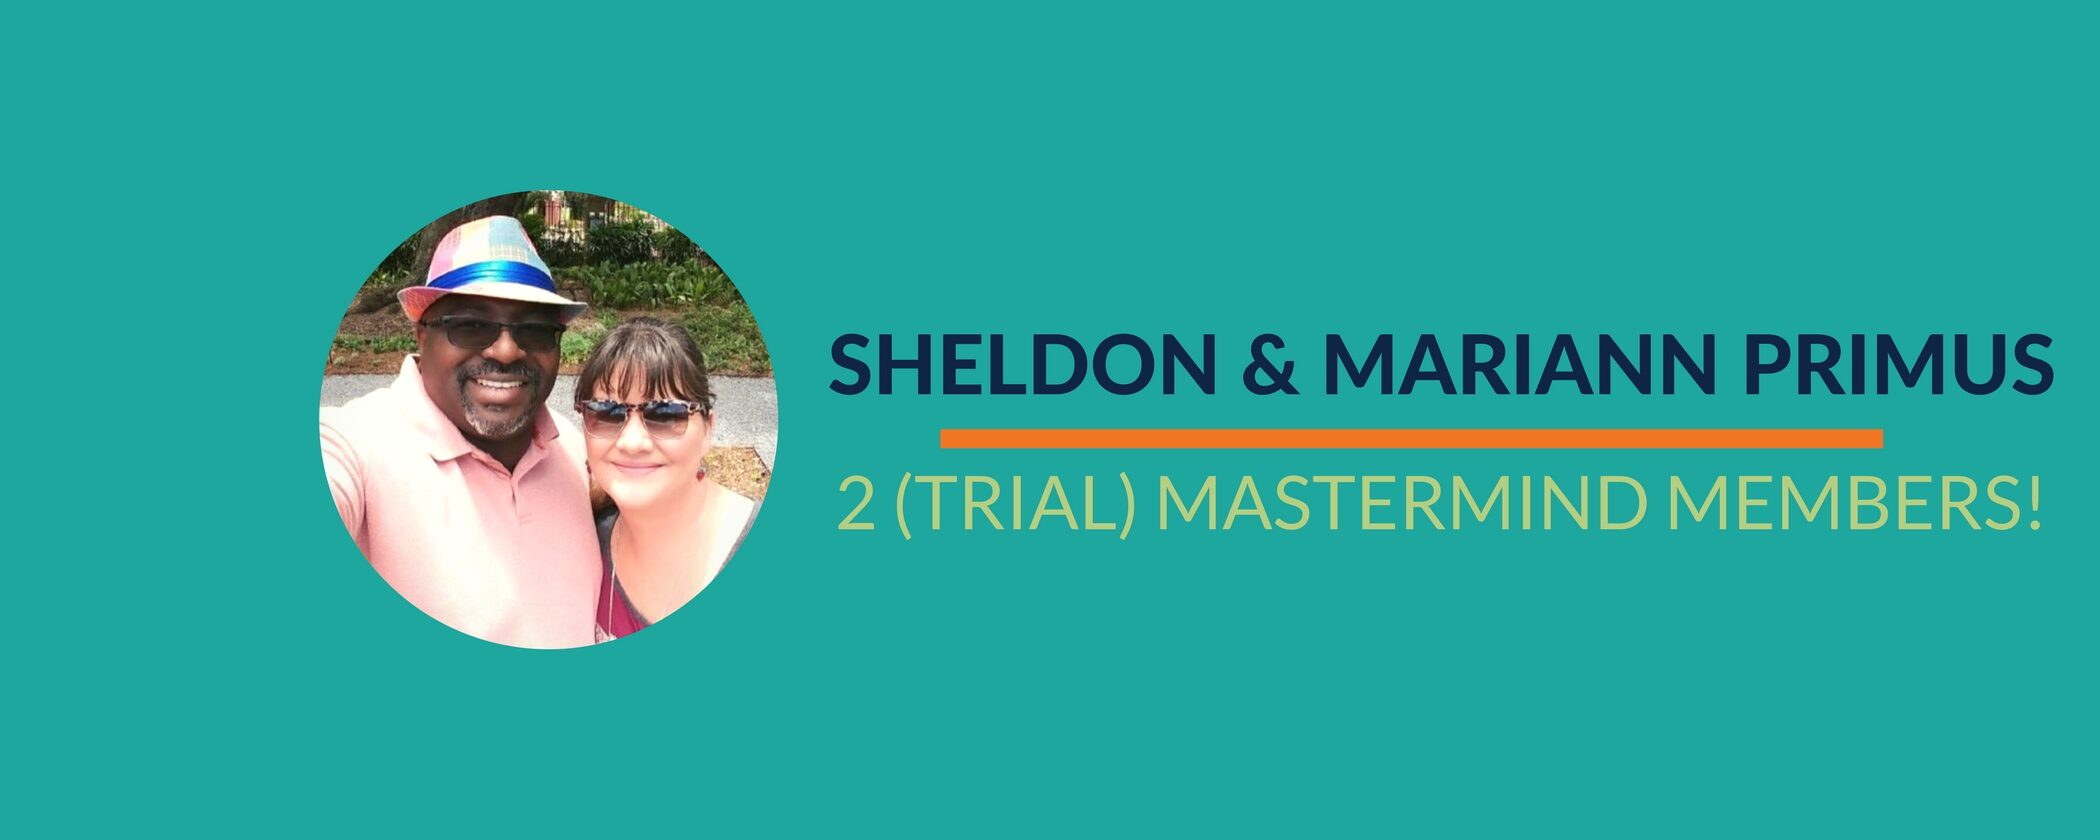 Success Story: How Sheldon got trial members a day after launching